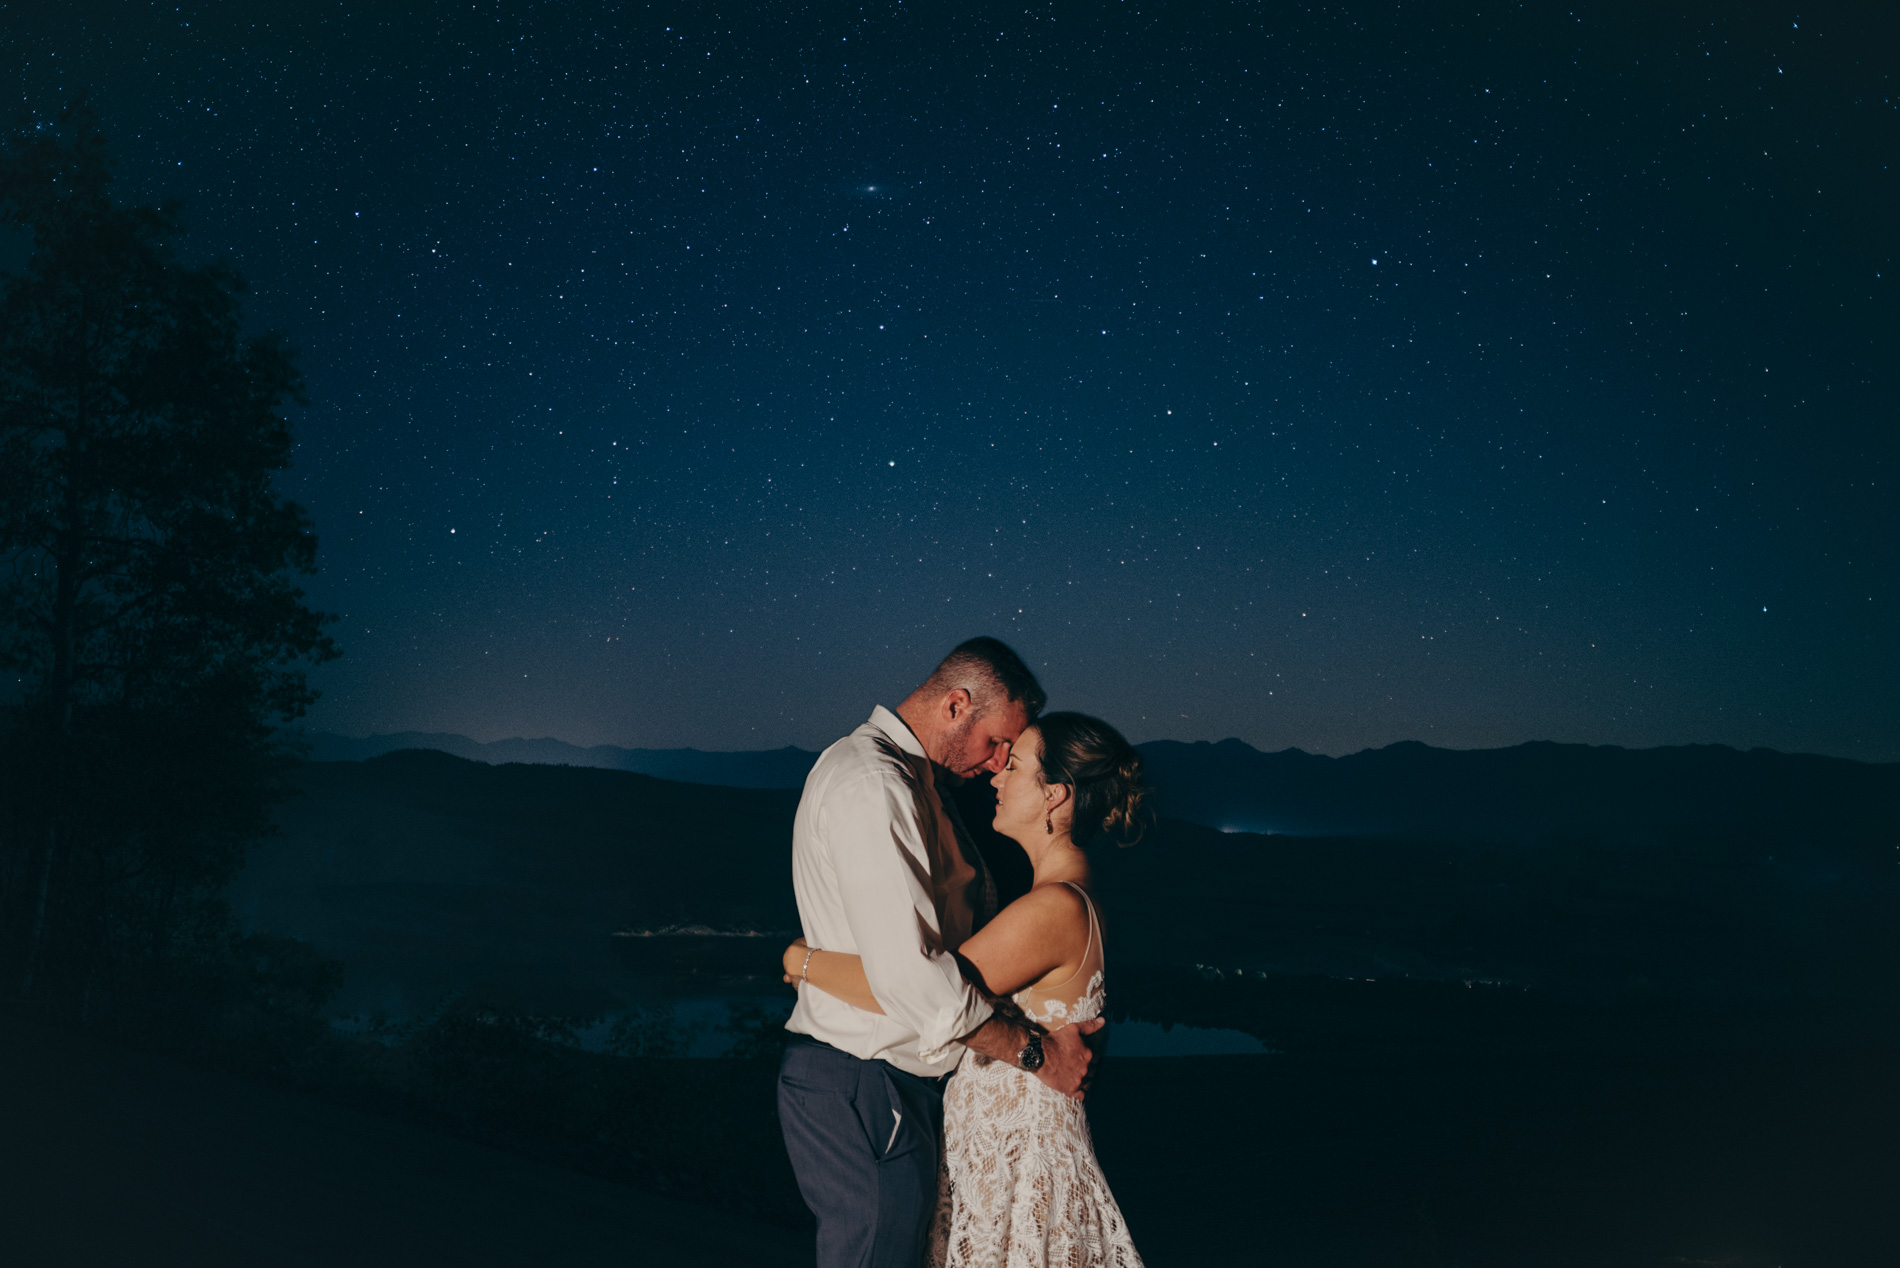 antler-basin-ranch-wedding-starry-night-wedding-couple-under-stars-granby-colorado-wedding-granby-wedding-photographer-antler-basin-ranch-wedding-nighttime-wedding-photography